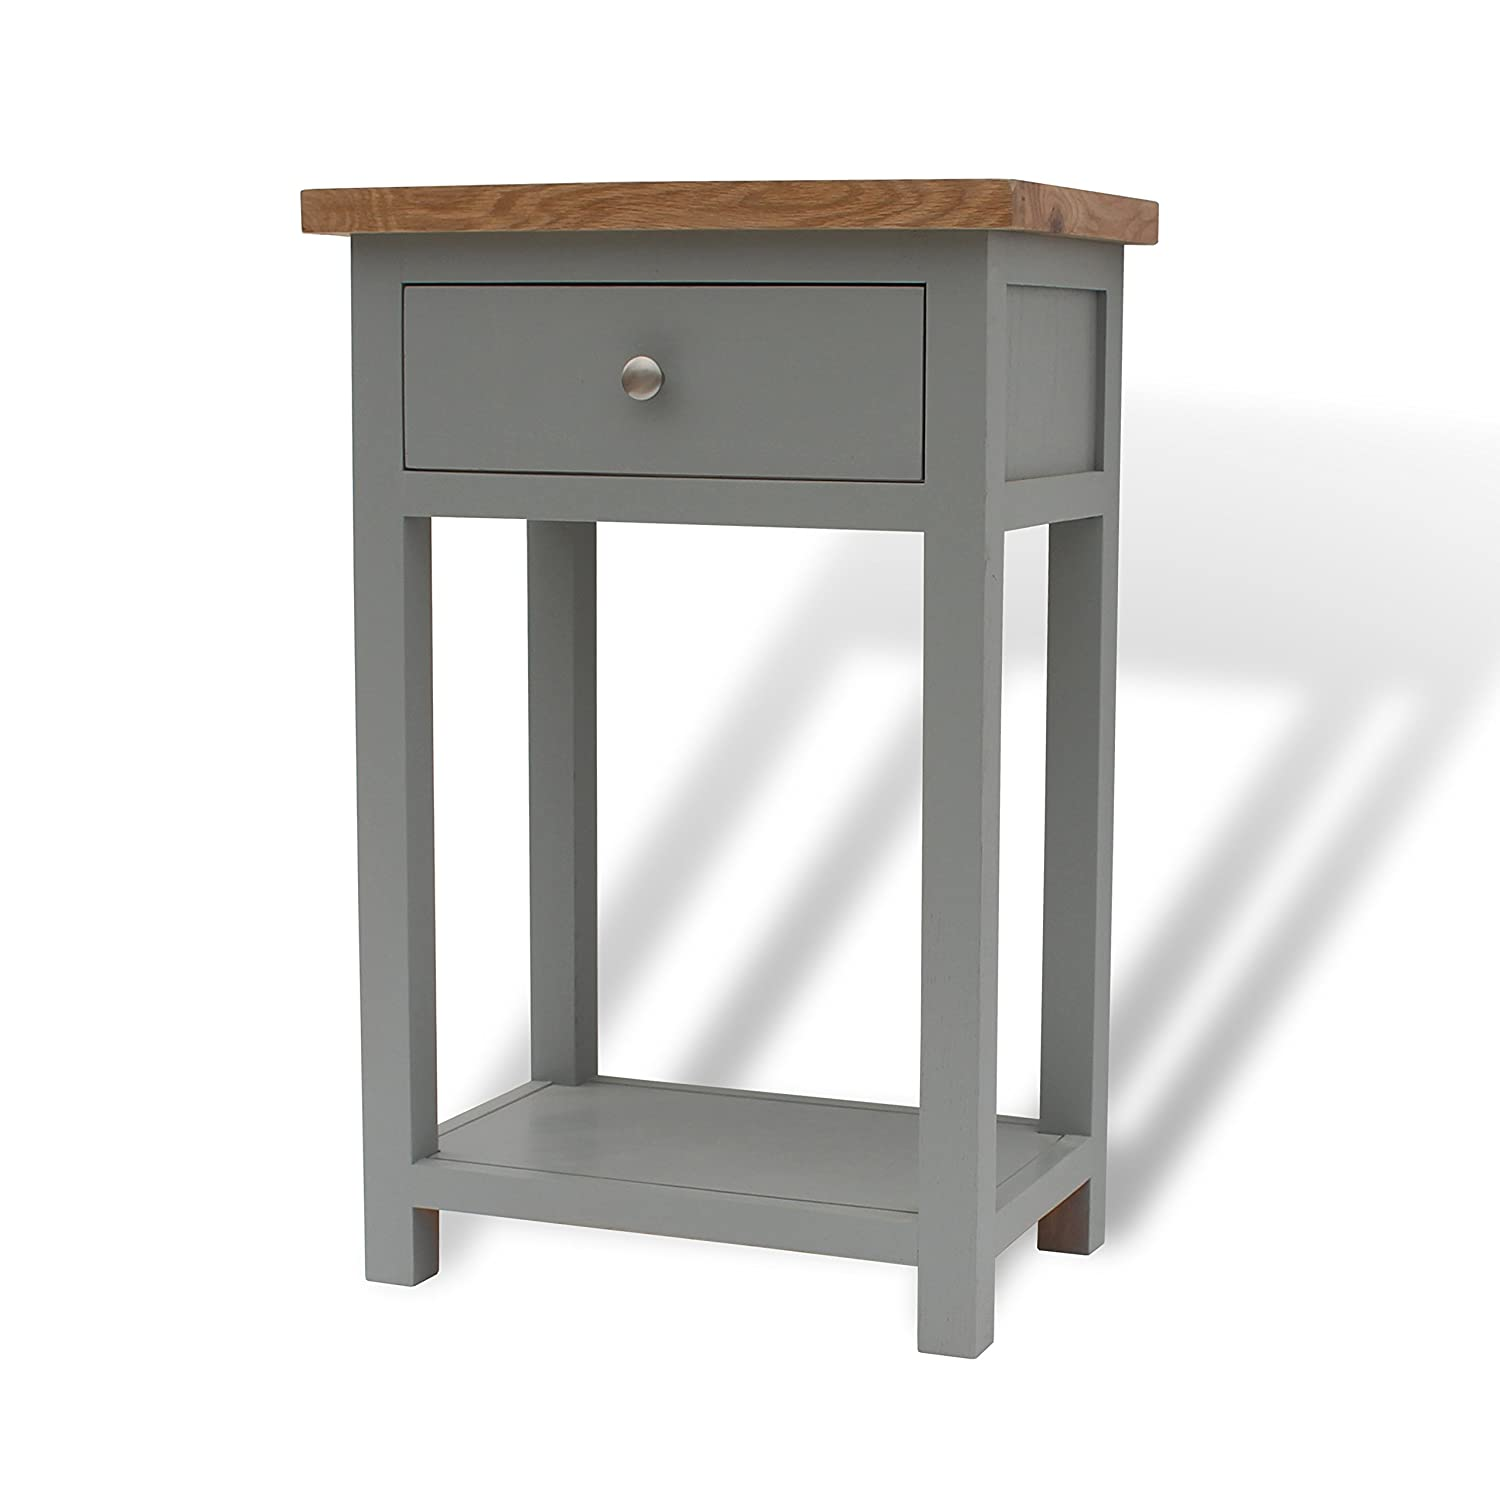 98cc6931d817 GREYSTOKE PAINTED GREY OAK SMALL CONSOLE TABLE HALL TABLE SOLID WOOD TELEPHONE  TABLE  Amazon.co.uk  Kitchen   Home